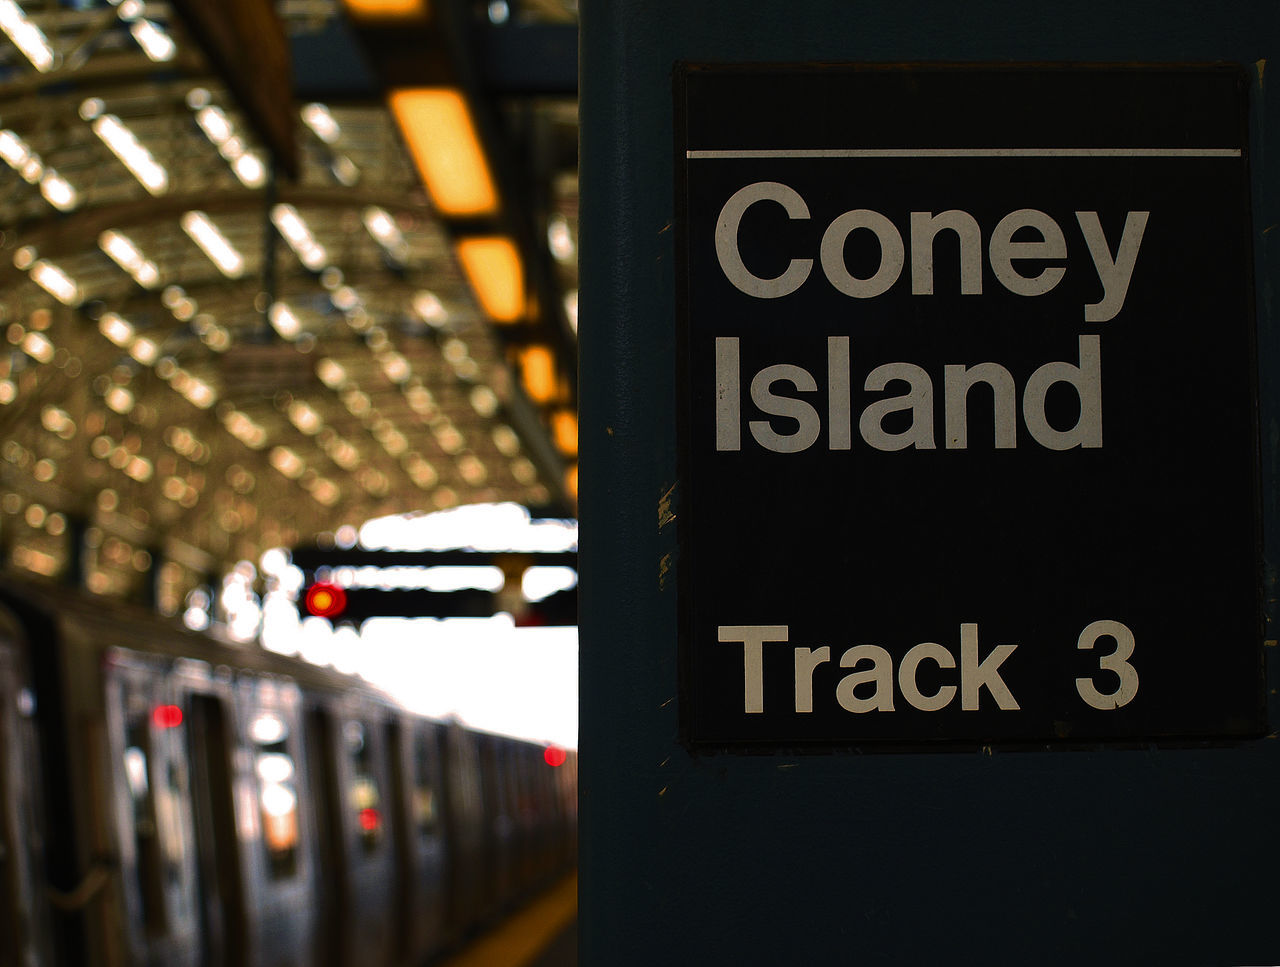 Close-Up Of Coney Island Text At Railroad Station